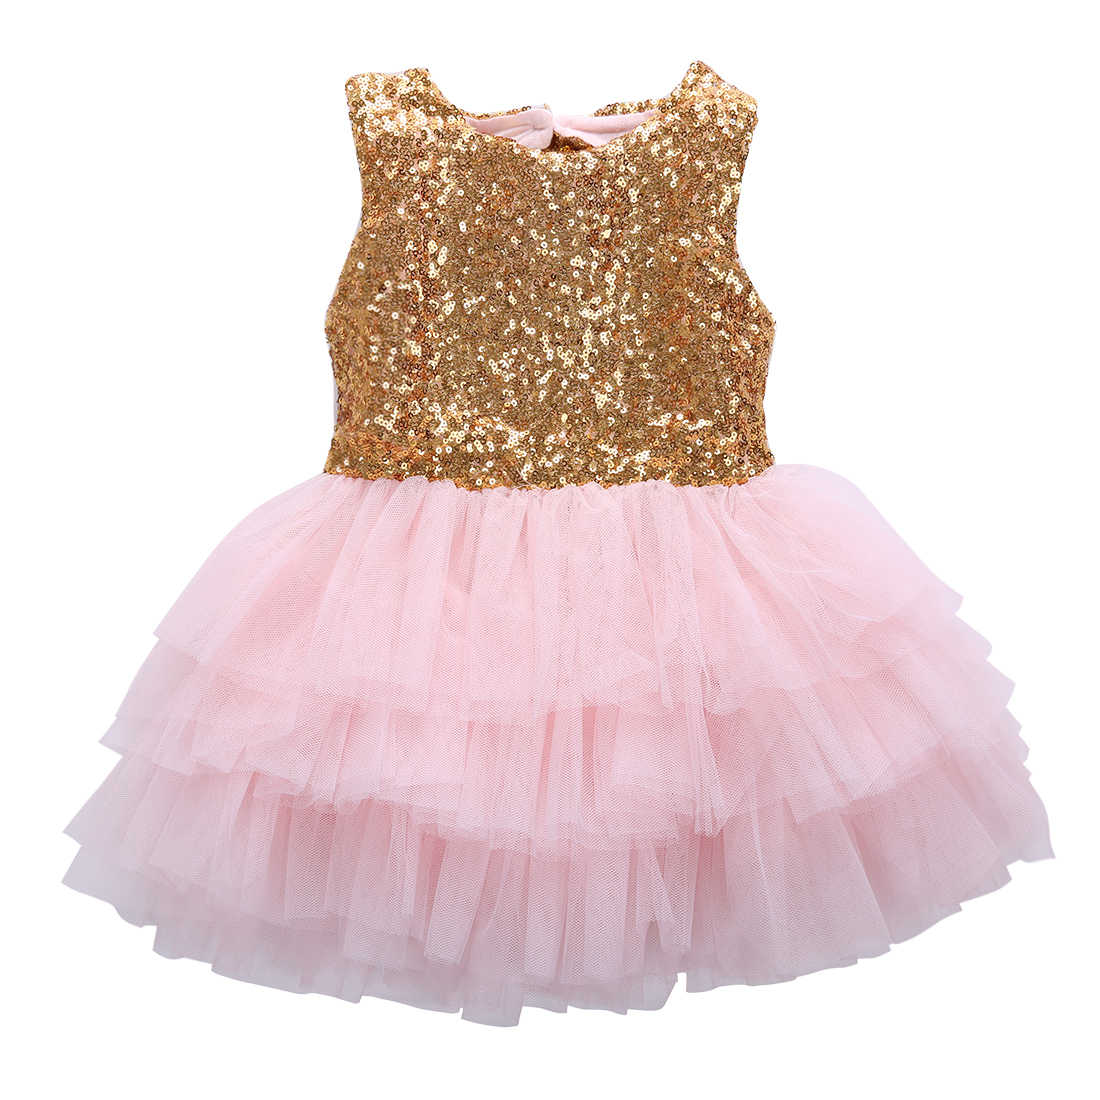 312c7566d4 Detail Feedback Questions about Baby Flower Girls 2017 New Fashion ...